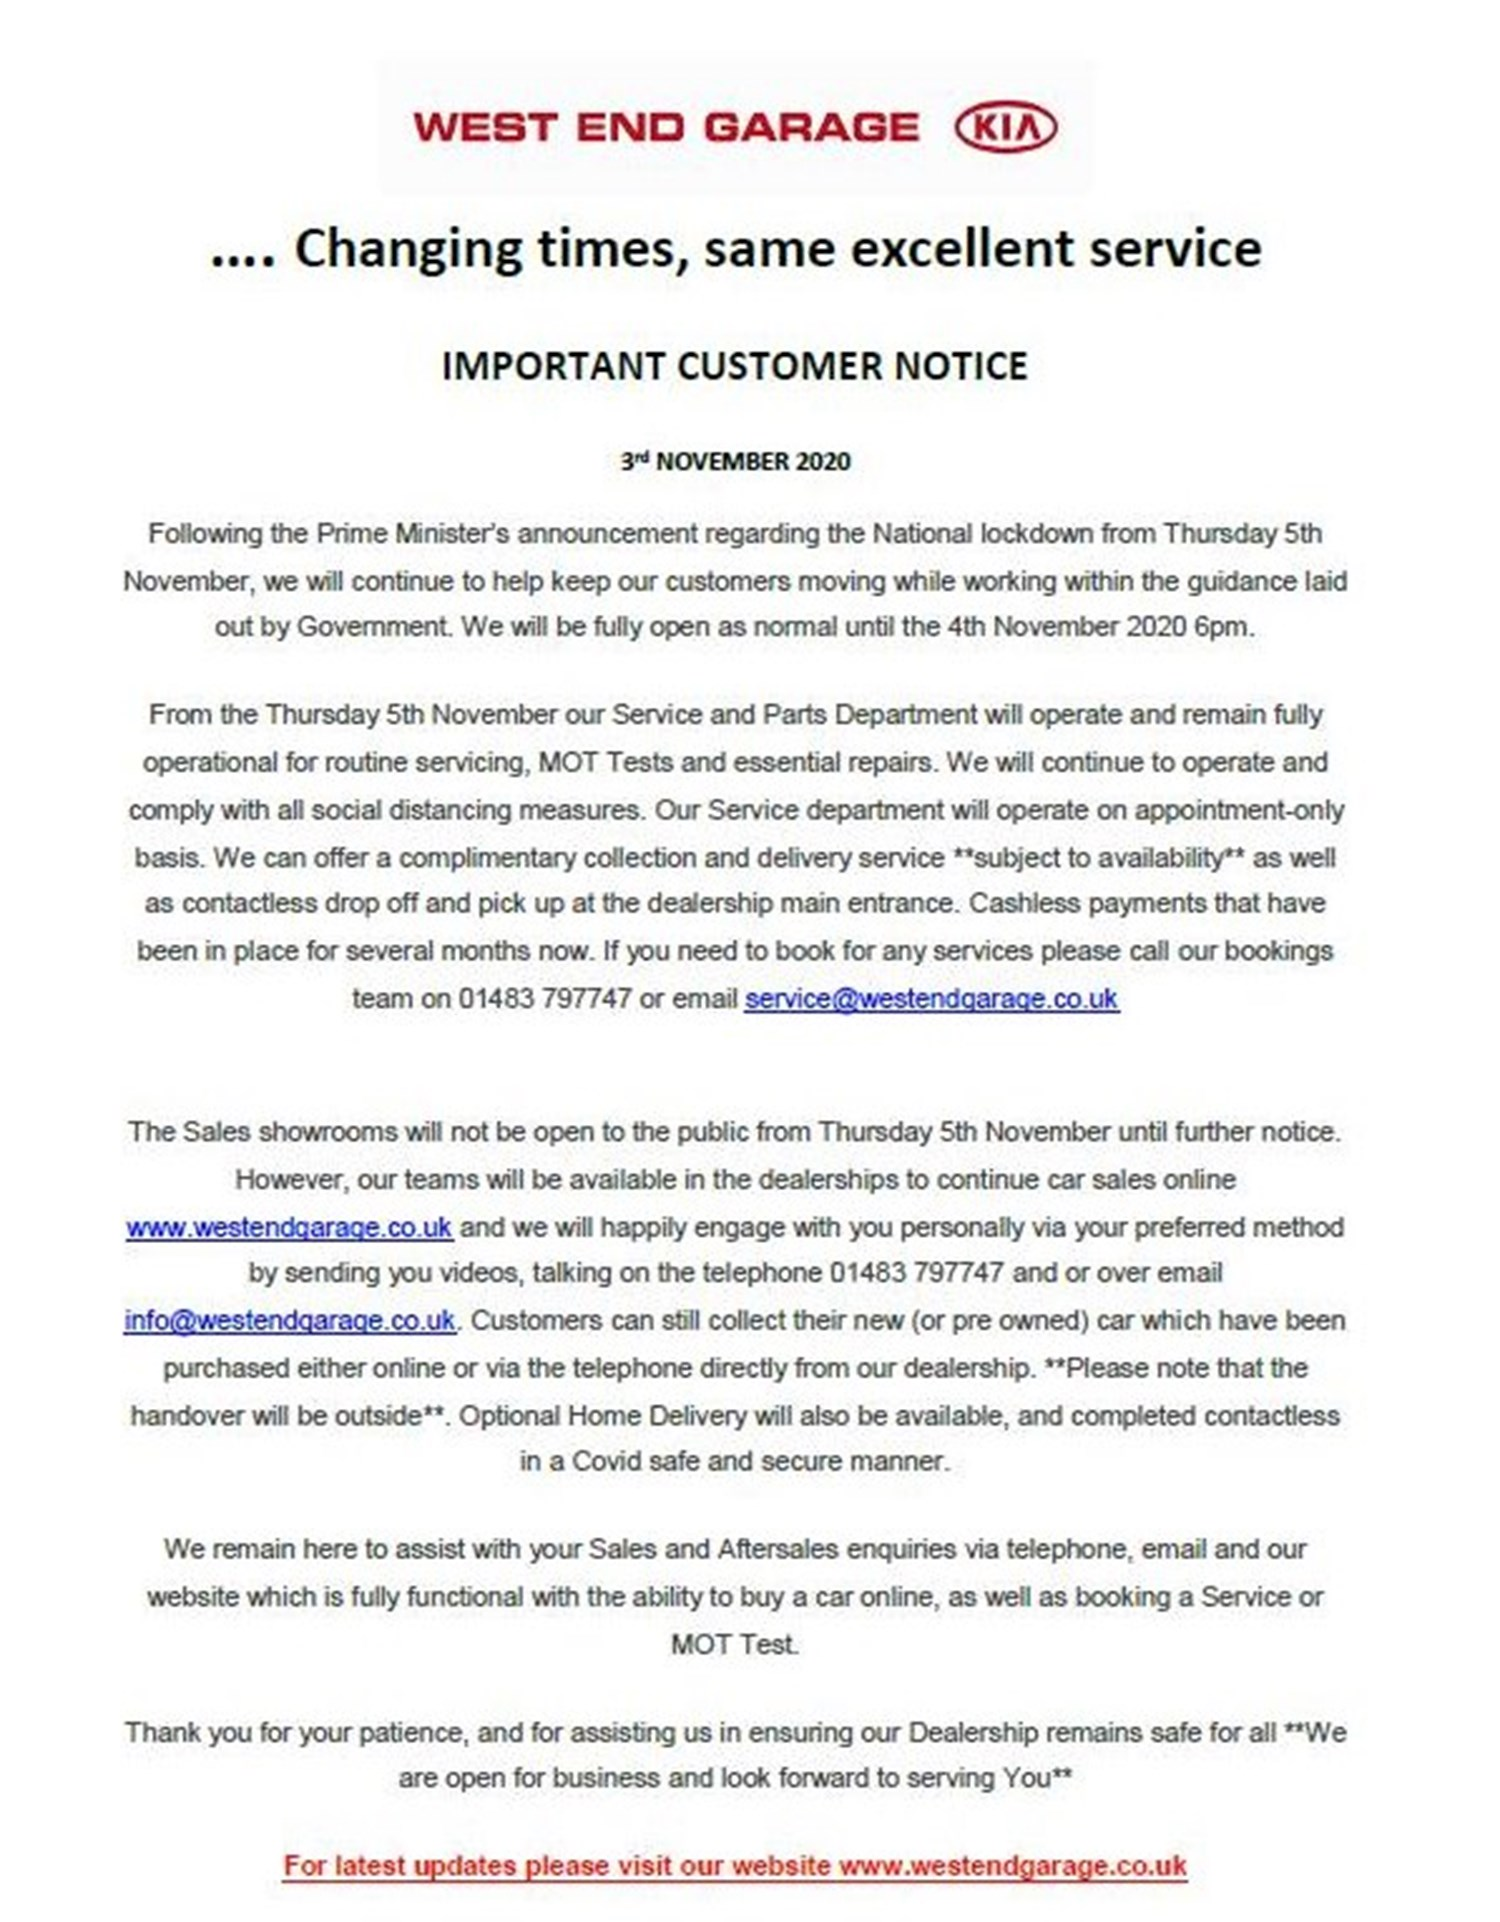 Changing times, same excellent service..